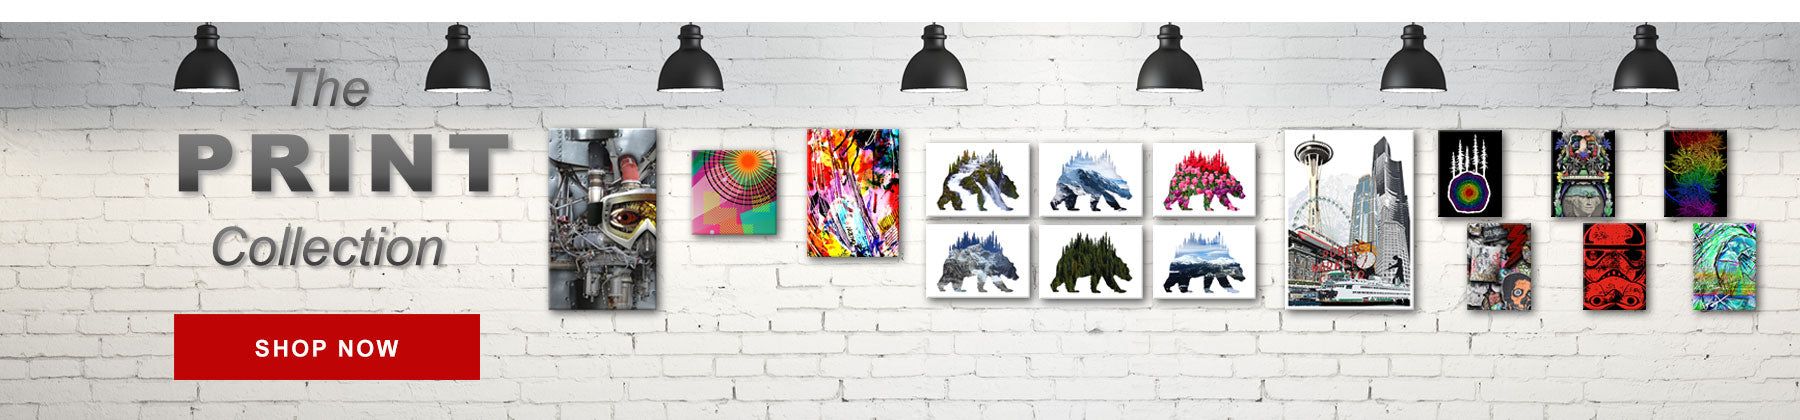 Original Art Prints from the Artists and Designers at SQUATCH Industries.    Photography, Water Color Prints, Digital Painting, Photo Composites, Graphic Arts